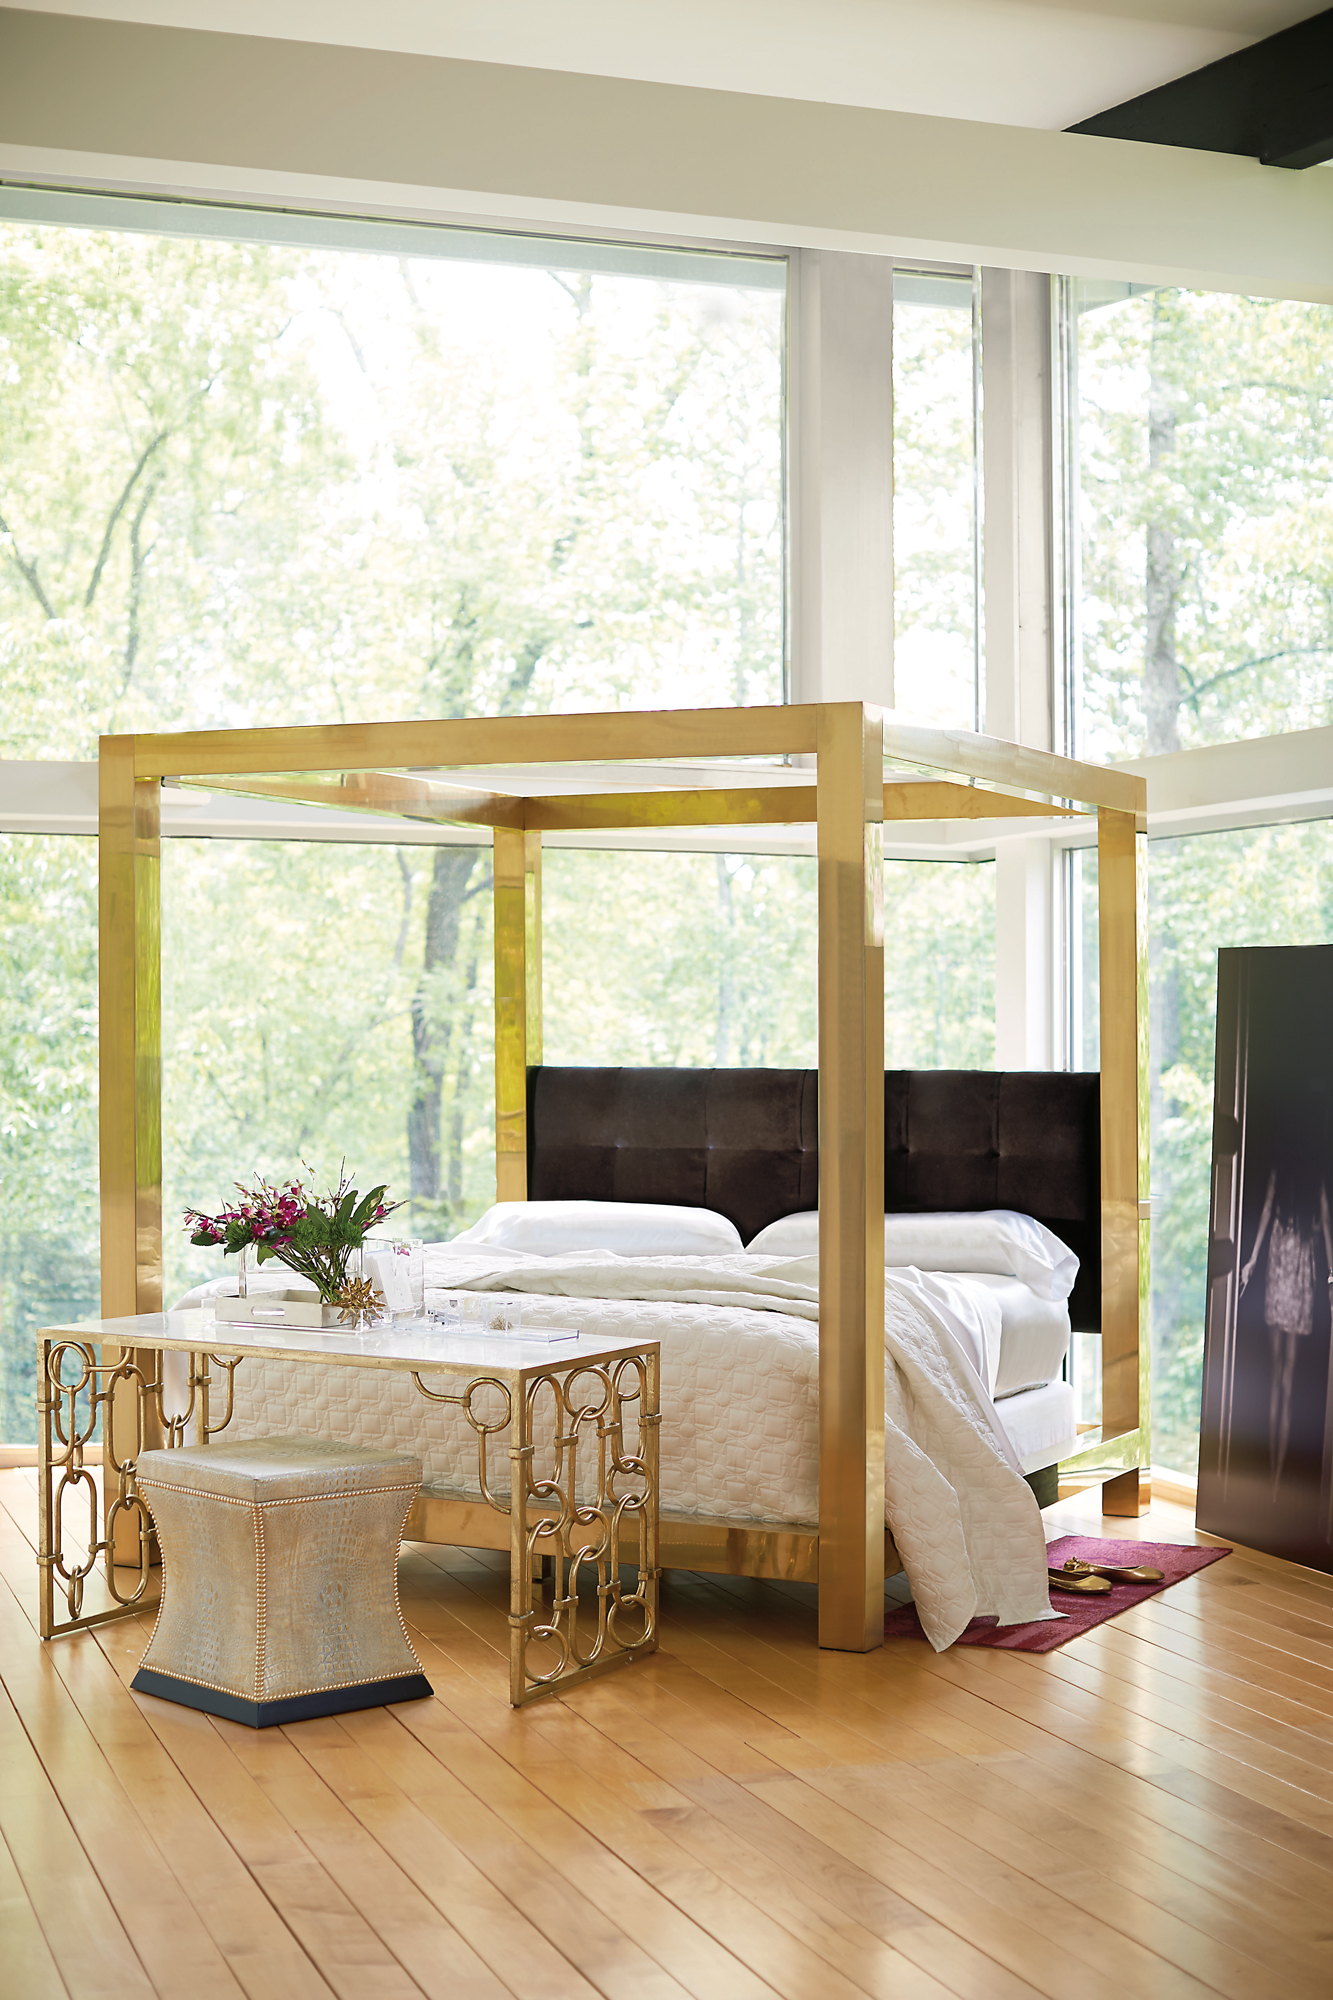 Beautiful bedroom inspiration this peaceful home for Gold bed canopy